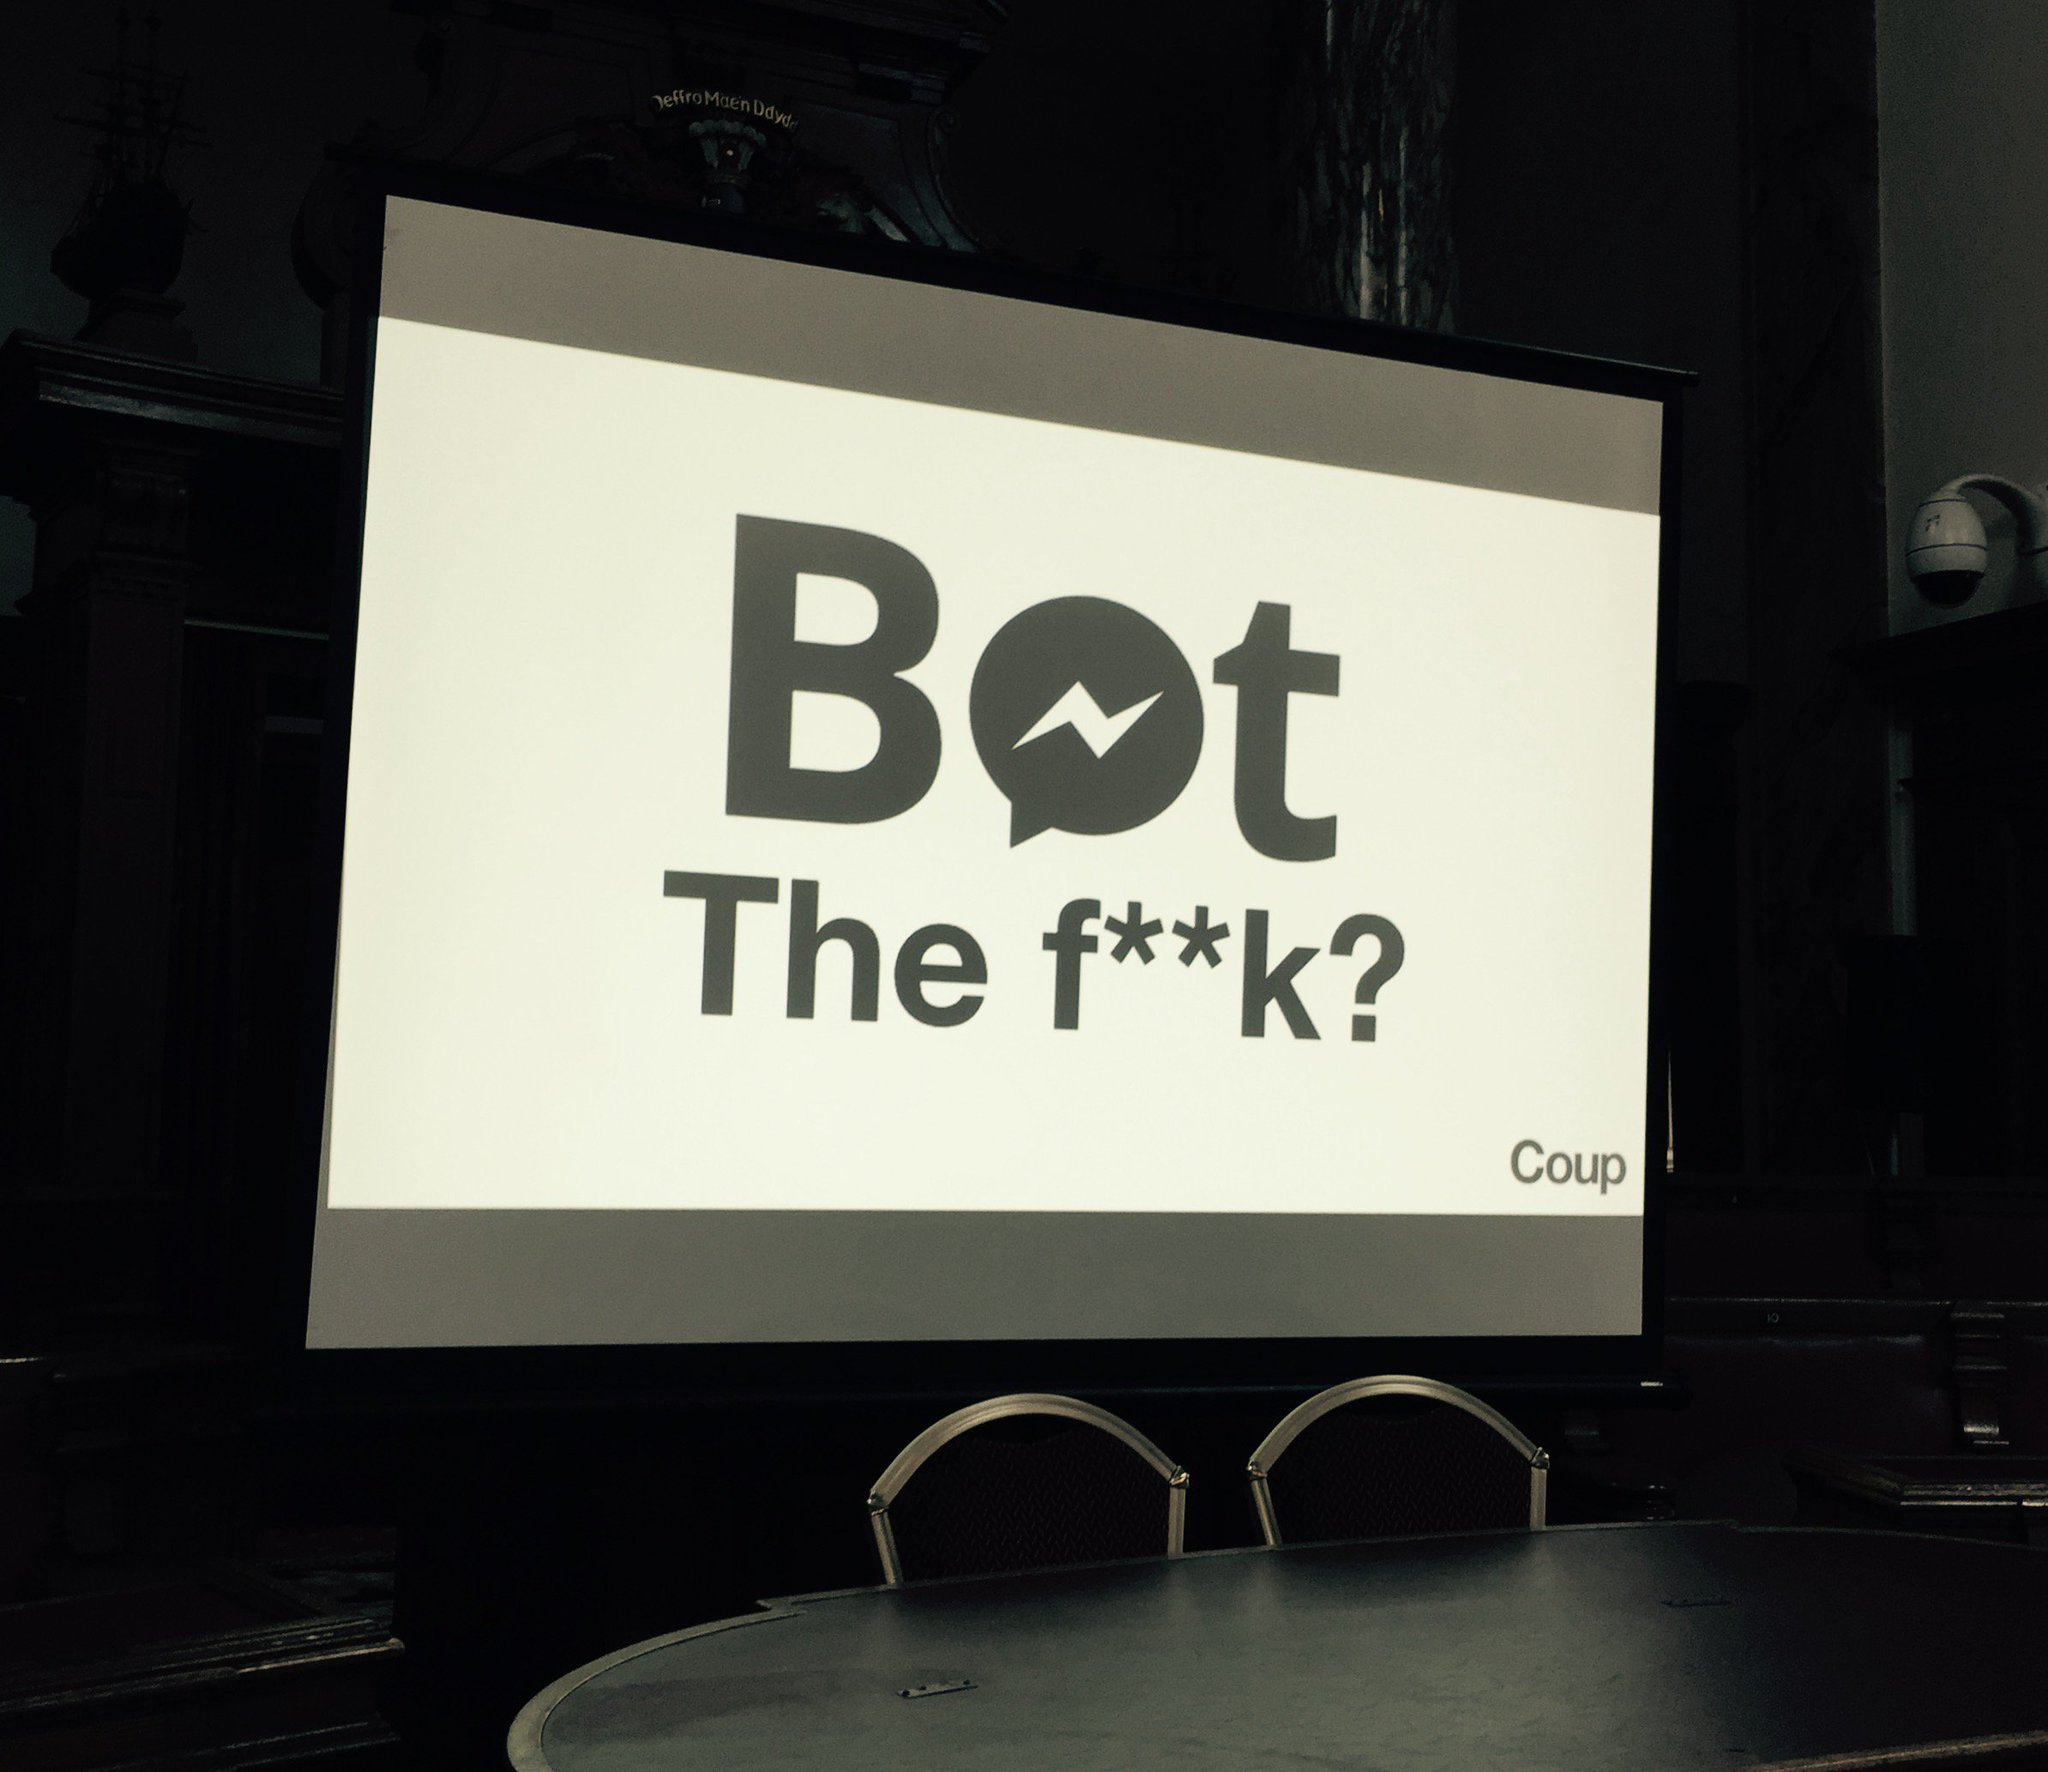 Bots do lots!  Founder of We Build Bots 📲💻🤖@coupmedia_paul is live from 3pm in the Masterclass: https://t.co/UGh9fU0te5  #oiconf #darksocial https://t.co/GNeeOTcSOh